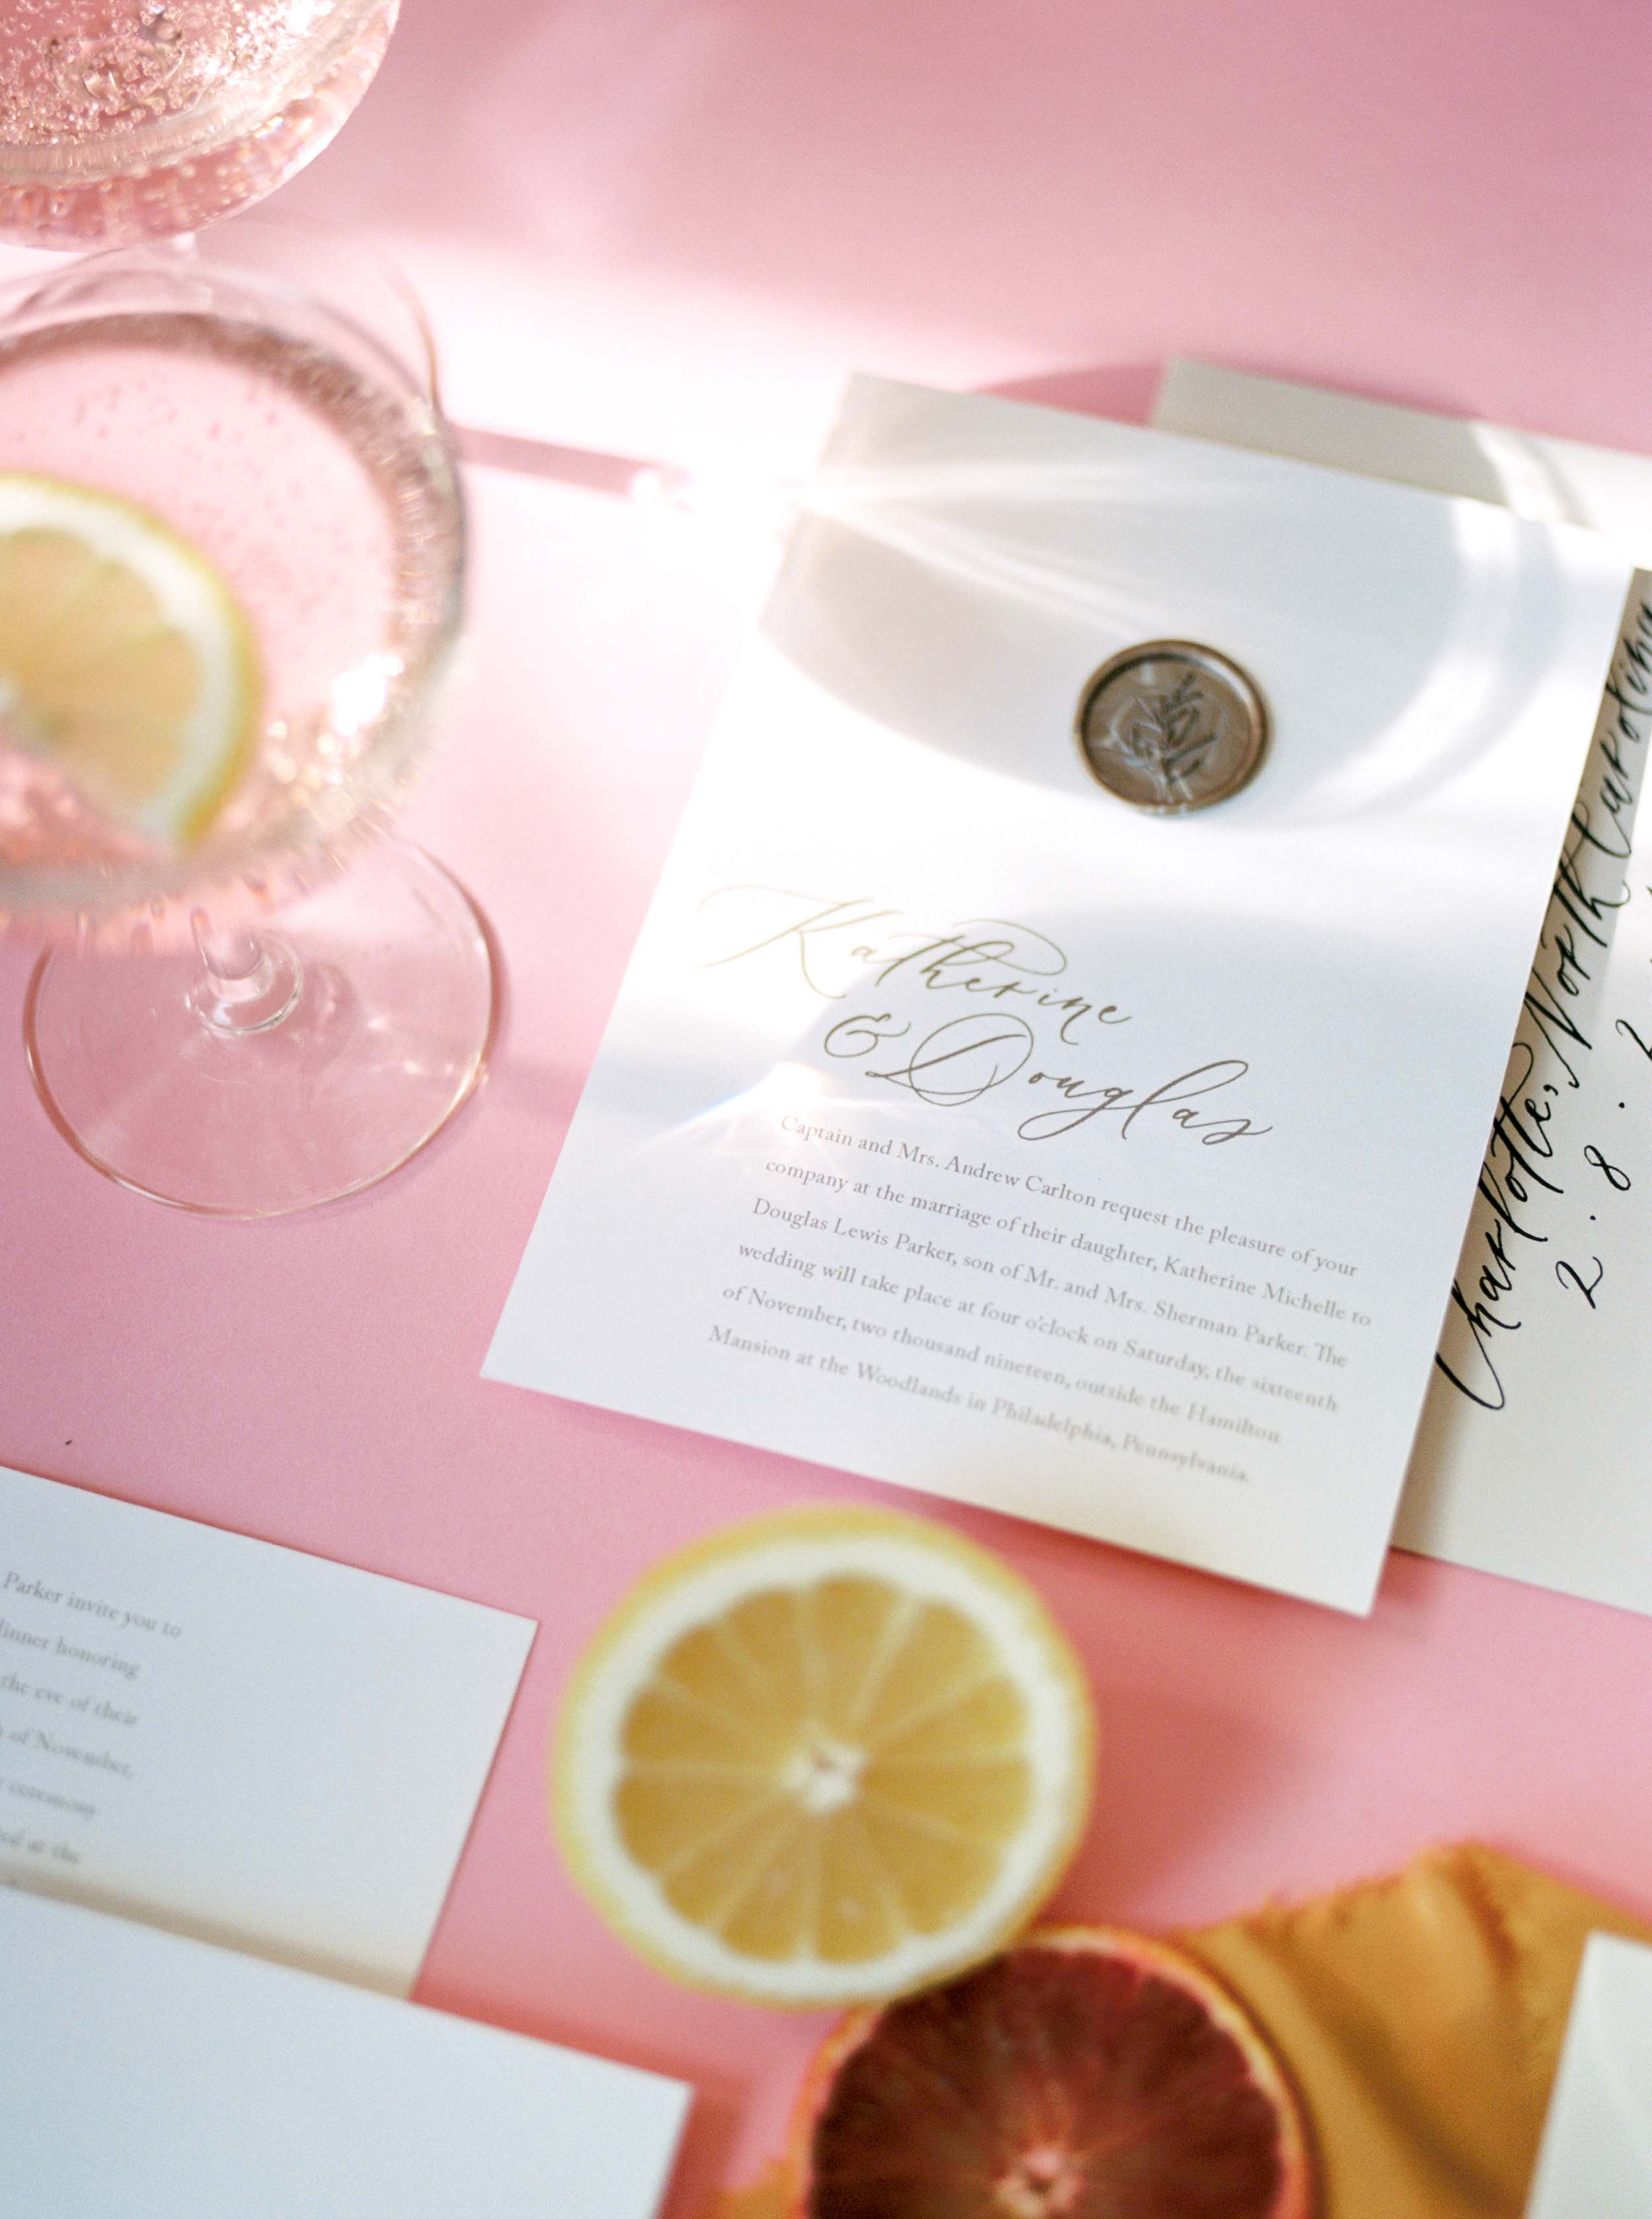 Fresh and light wedding stationery for spring and summer weddings. Modern minimalistic wedding invitations by Caitlin O'Bryant Design. Photography: Mylyn Wood Photography. Coordination: Kamea Events. Flowers: Wildflower Portland.